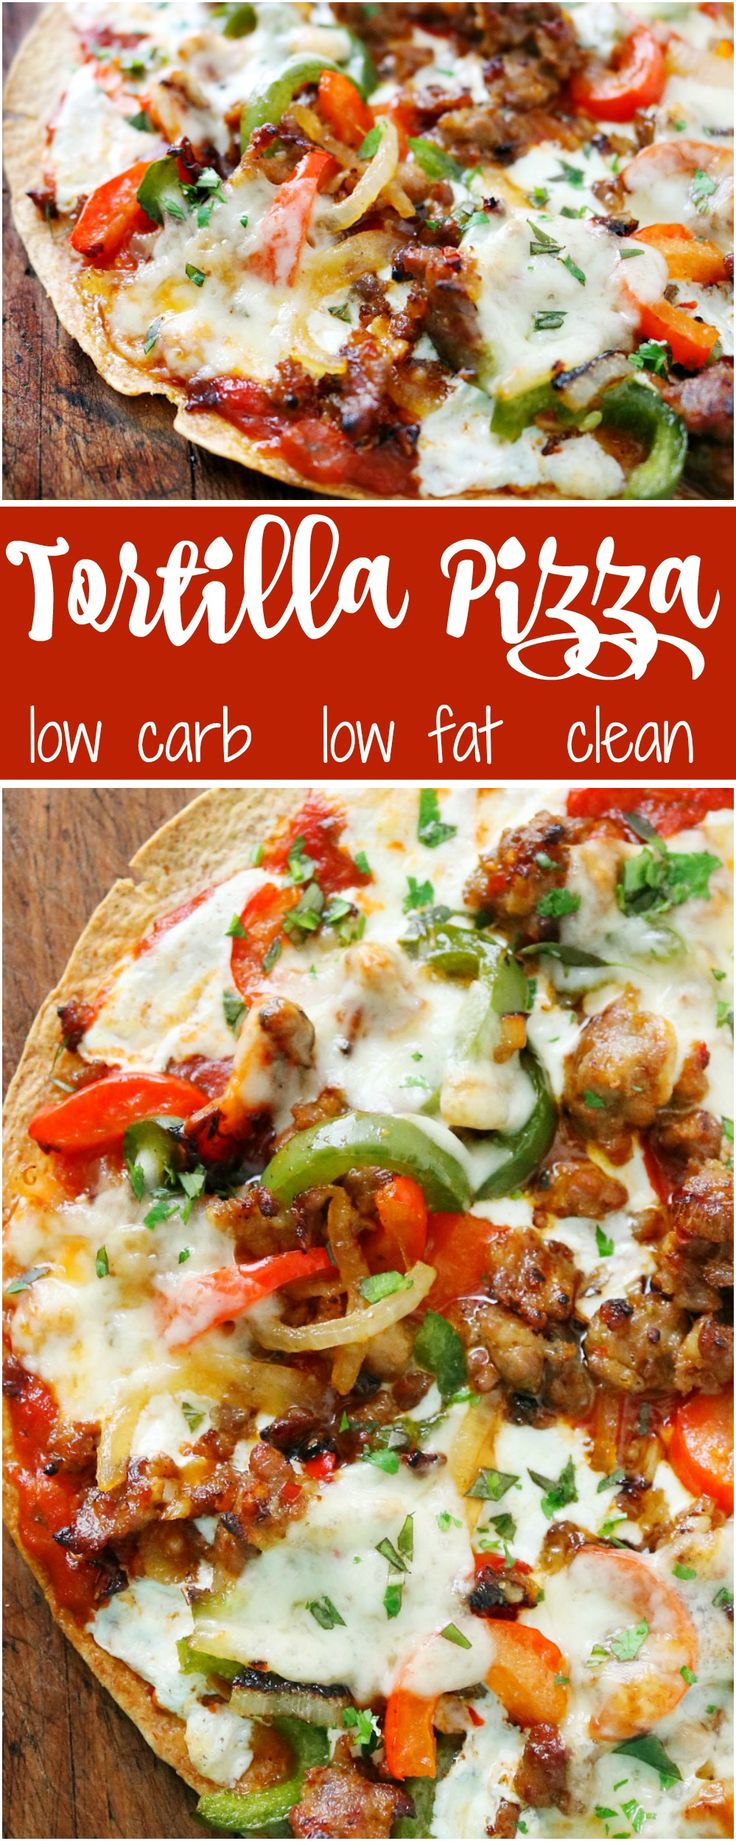 Eating Pizza CAN be healthy....it is all about alternative choices.  For instance, this pizza is made on a crispy tortilla - low carb, low cal!  And, all the ingredients are fresh and flavorful!  Done in 15 mins.